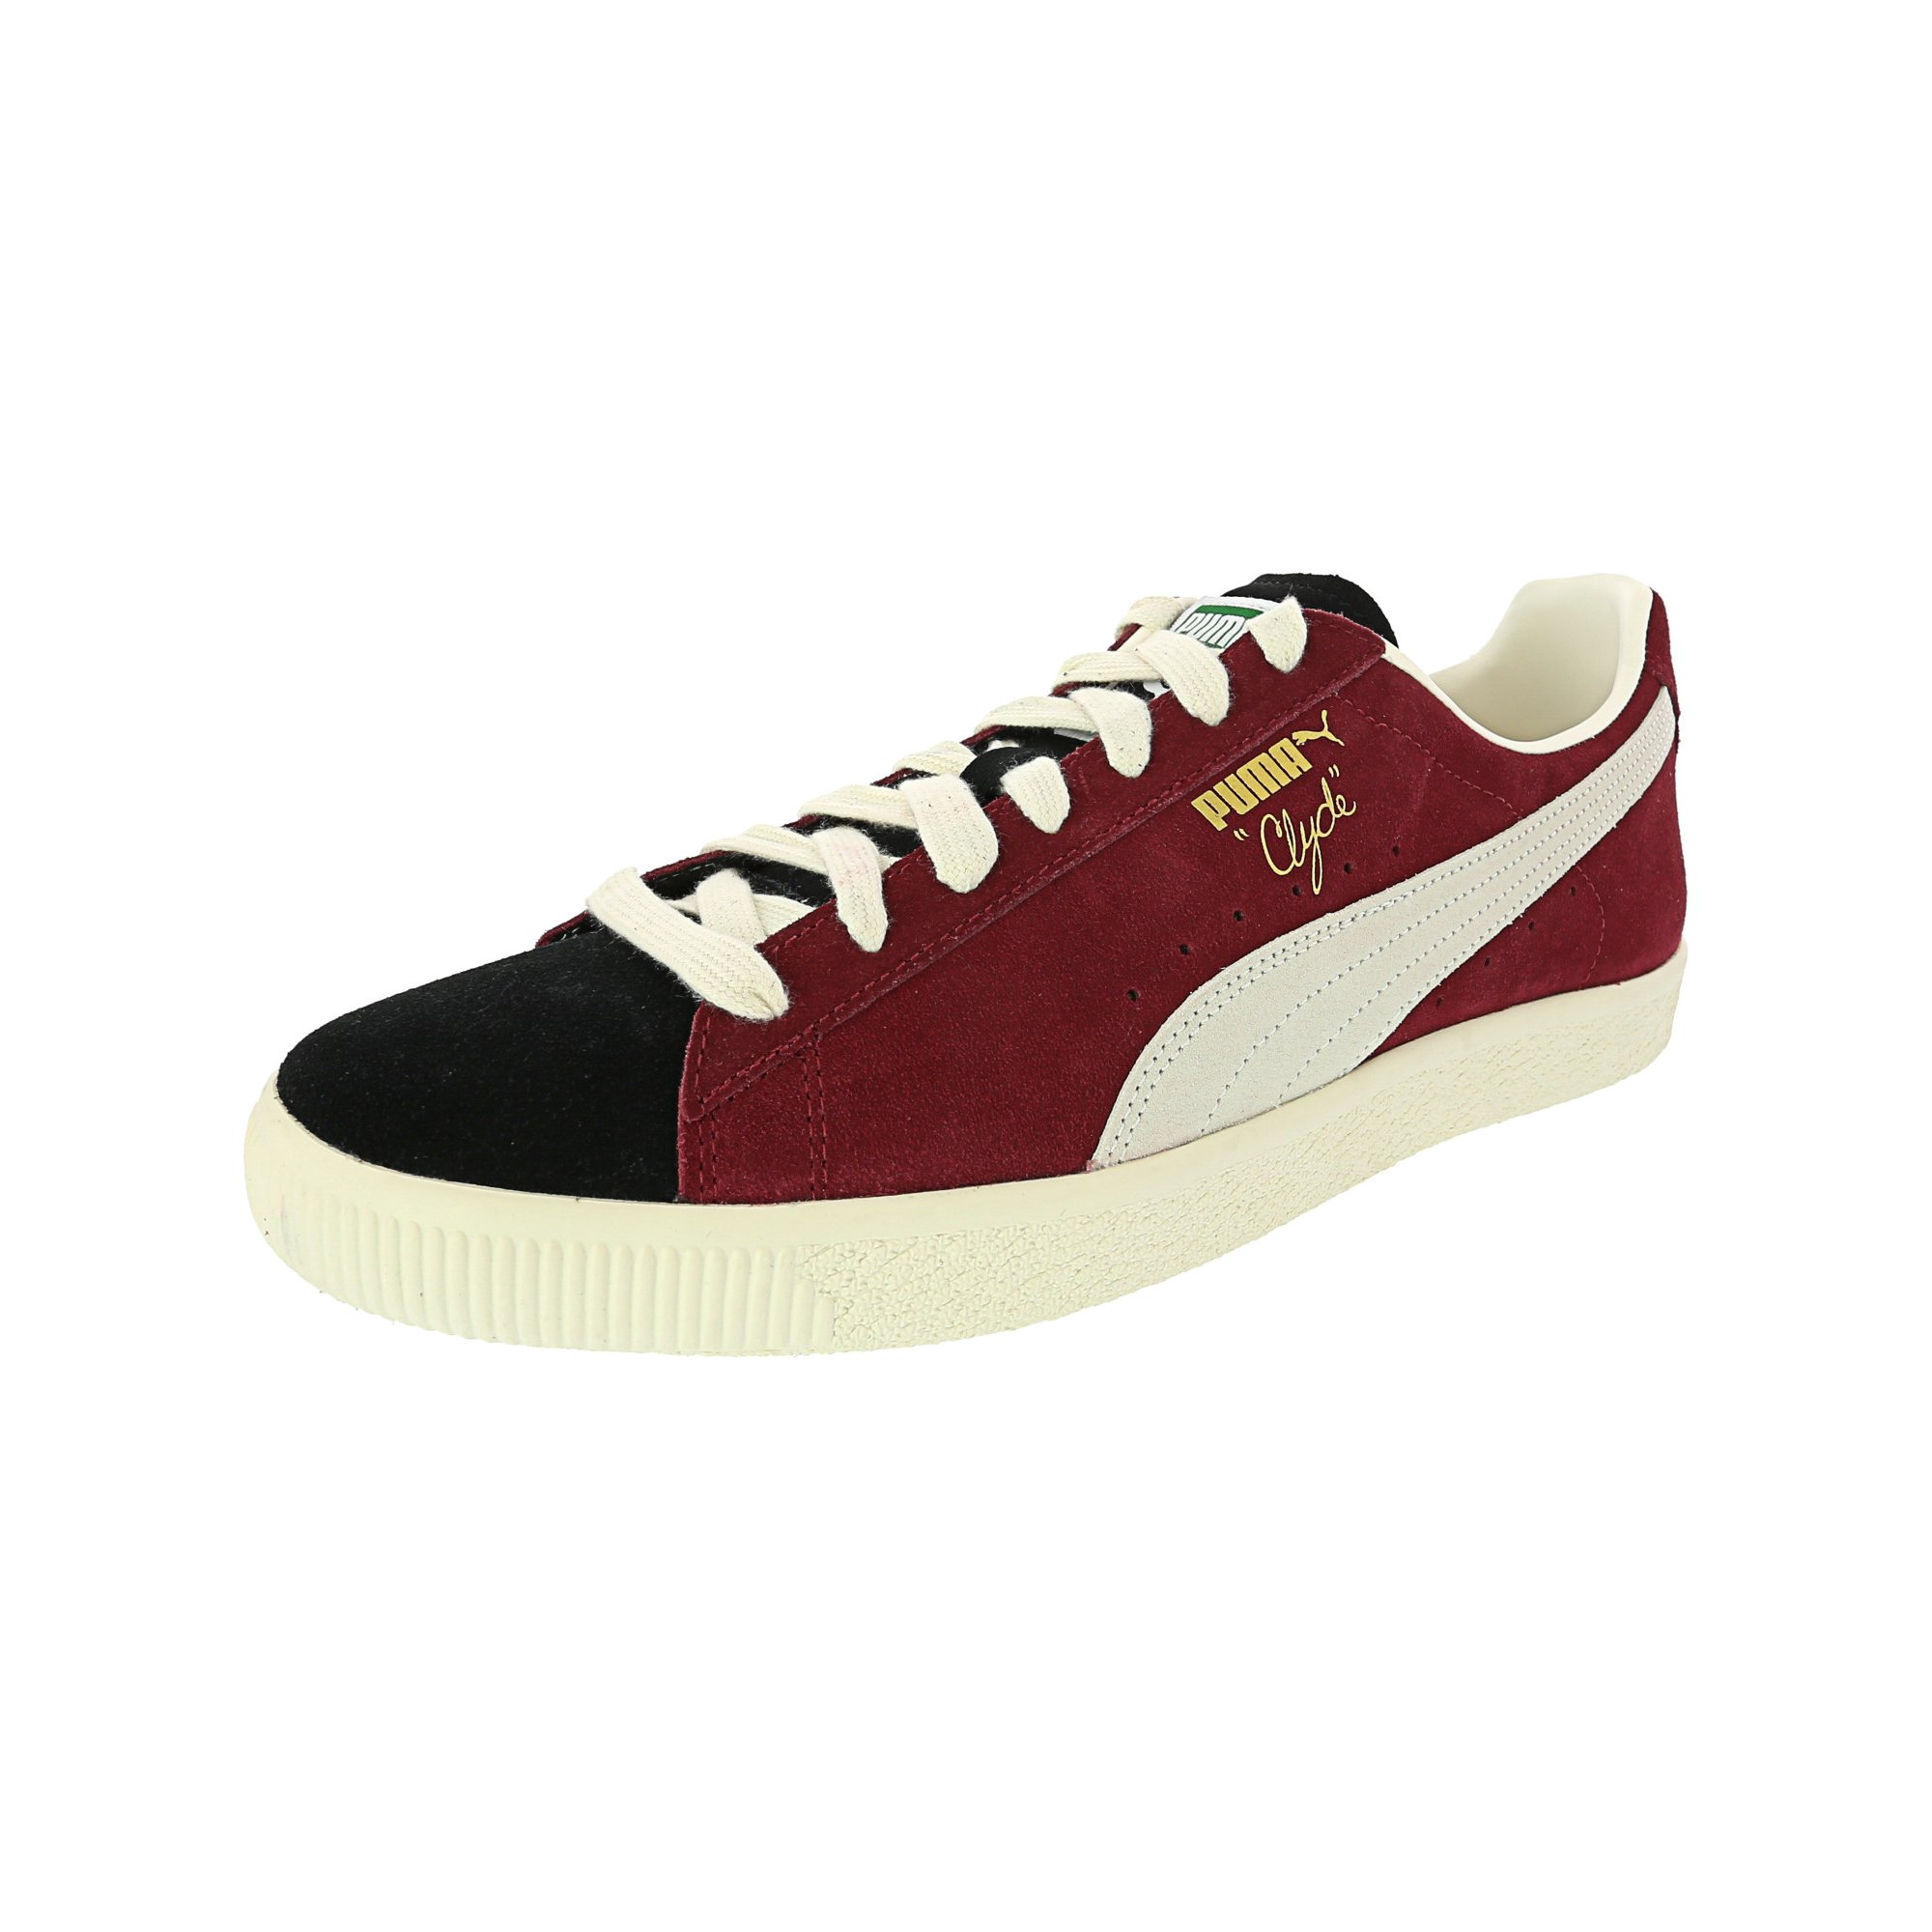 factory price a21ab 62199 Puma Men's Clyde From The Archive Black / Cordovan Whisper ...